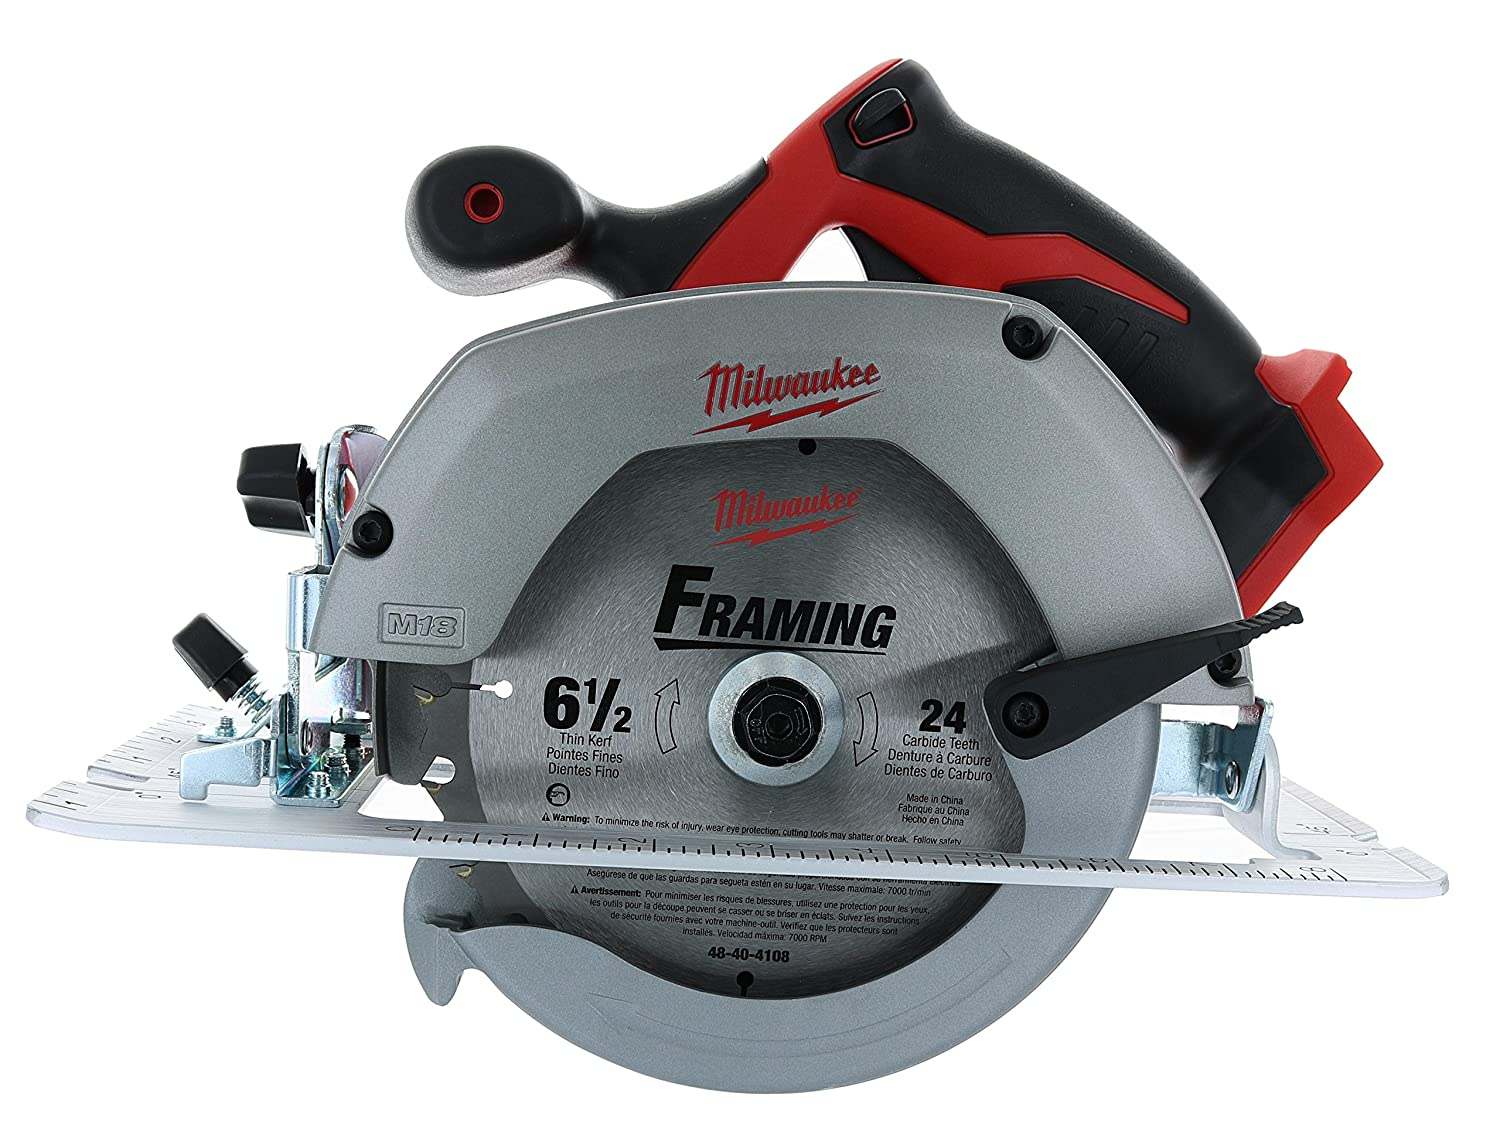 Milwaukee m18 2630 20 18 volt lithium ion 6 12 3 500 rpm cordless milwaukee m18 2630 20 18 volt lithium ion 6 12 3 500 rpm cordless circular saw wmagnesium guards and included 24 tooth carbide wood cutting blade greentooth Image collections